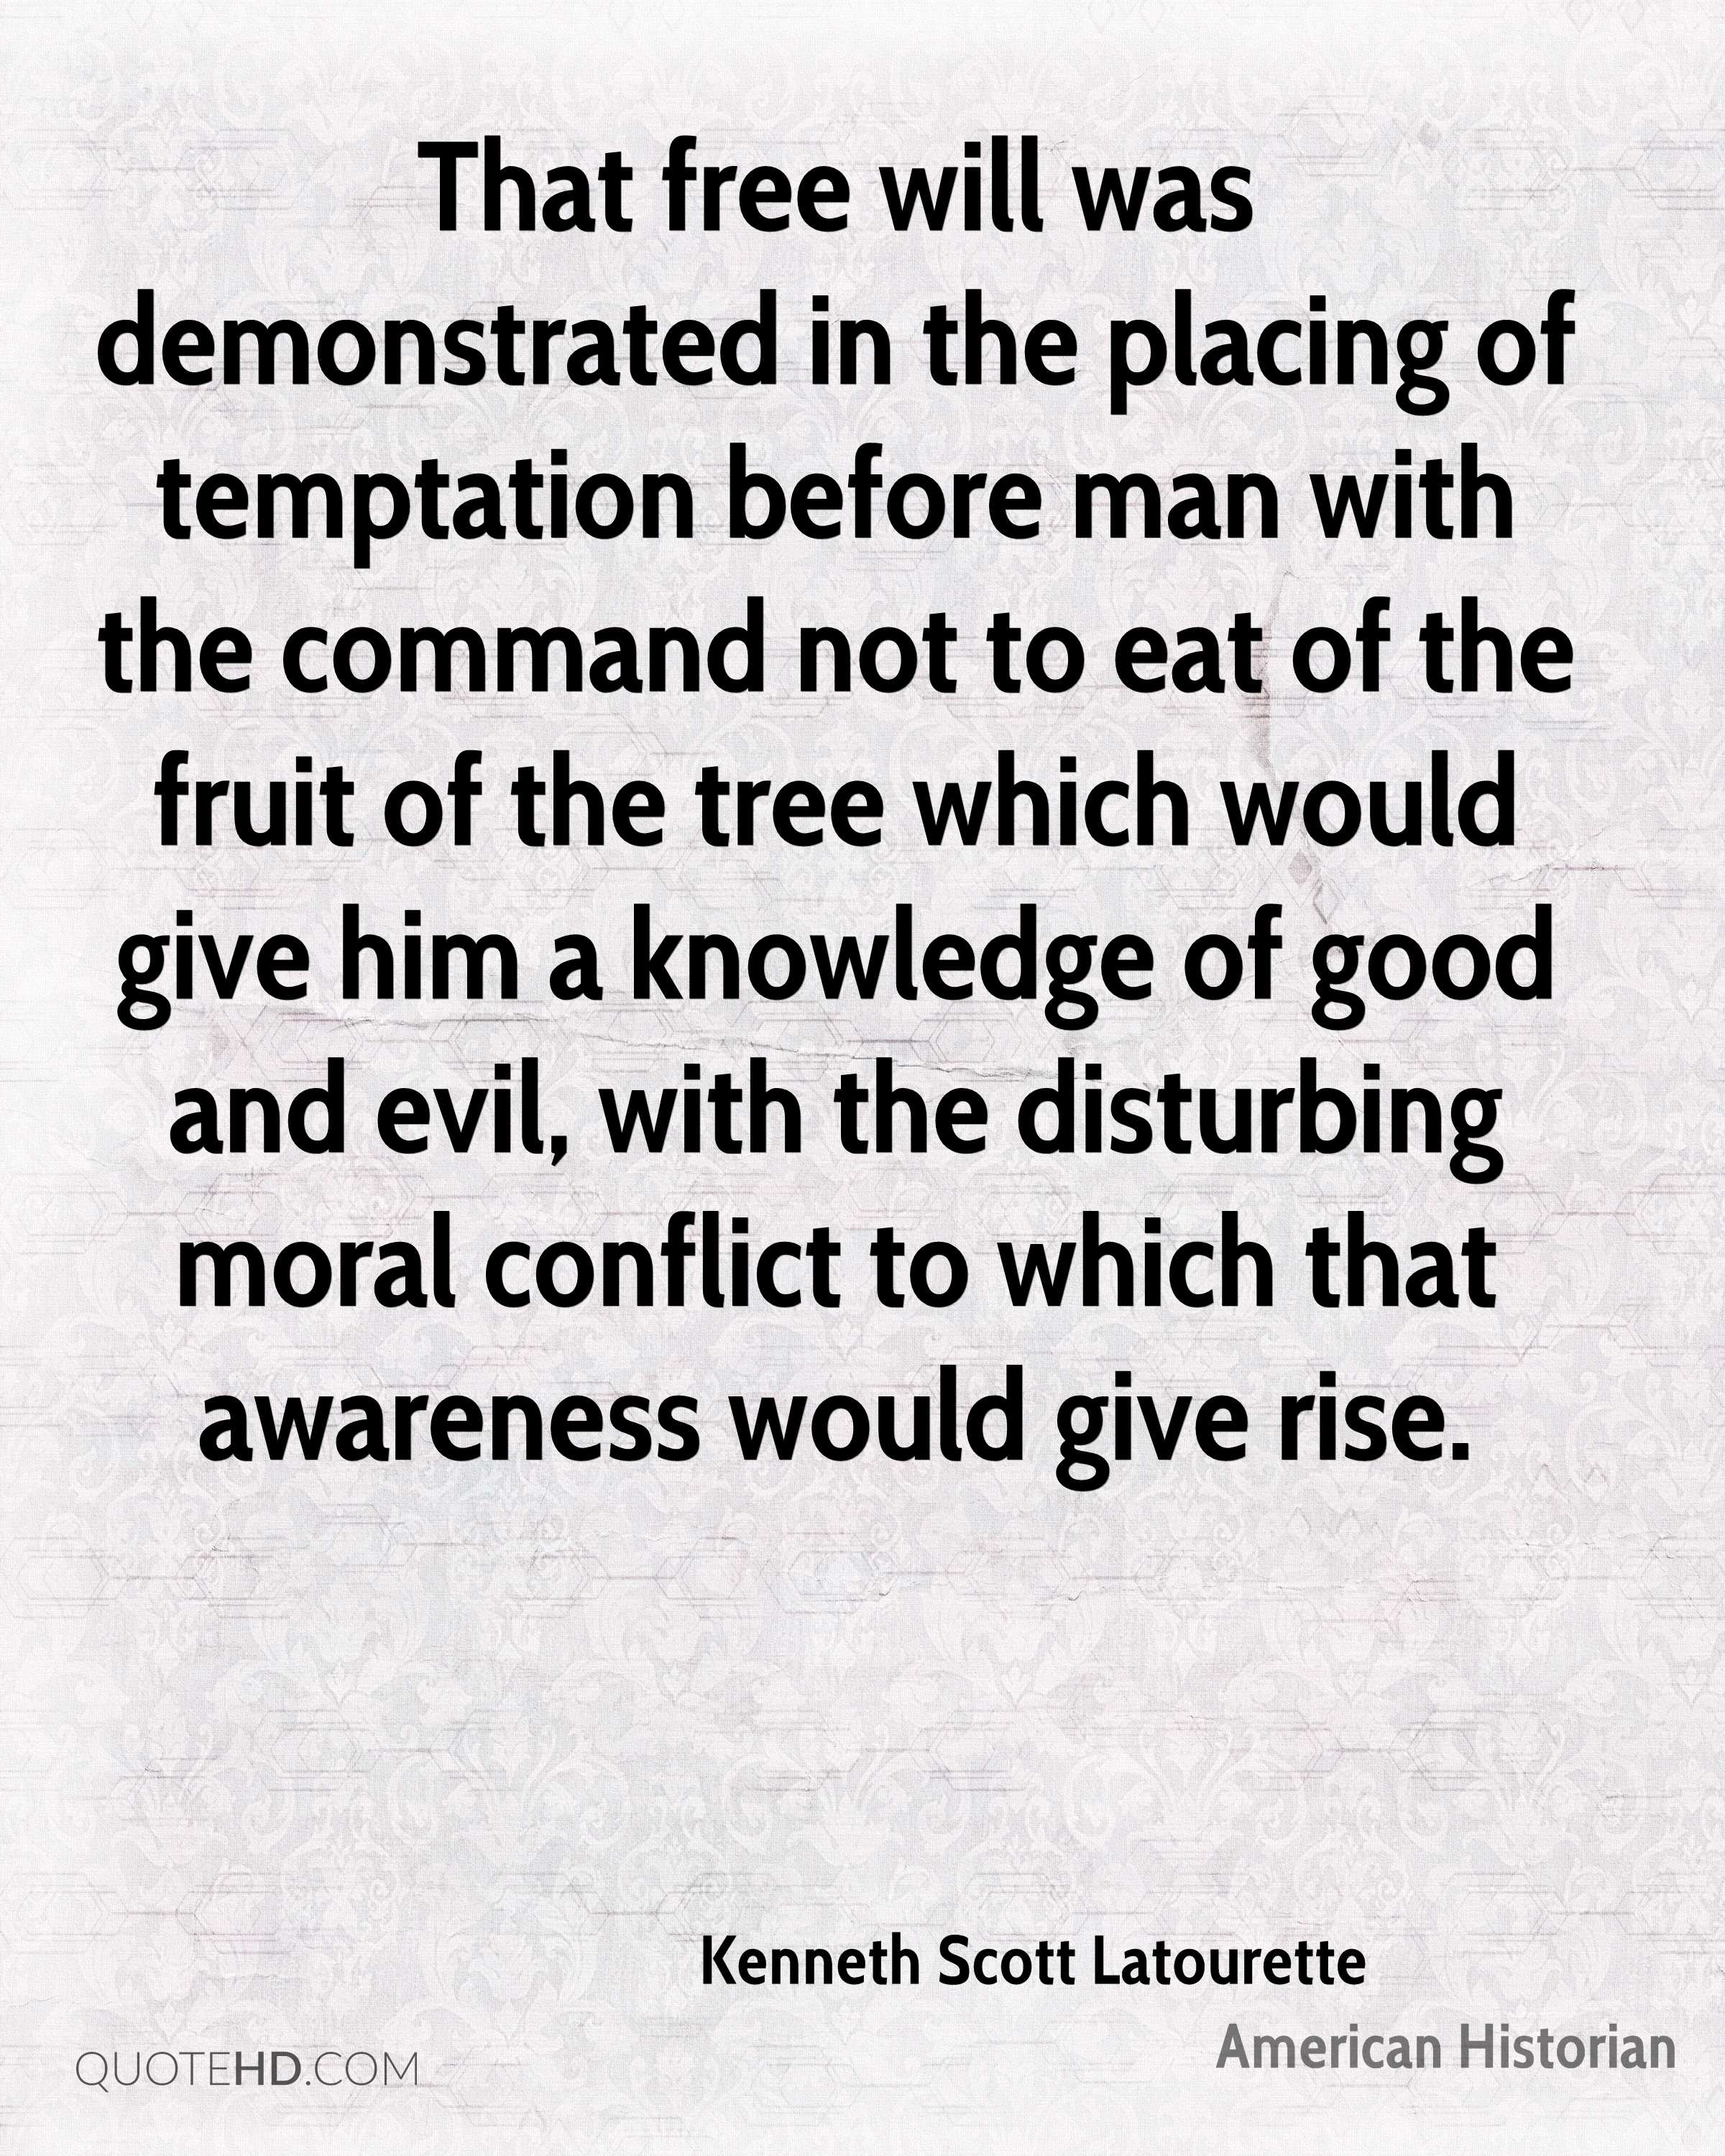 That free will was demonstrated in the placing of temptation before man with the command not to eat of the fruit of the tree which would give him a knowledge of good and evil, with the disturbing moral conflict to which that awareness would give rise.